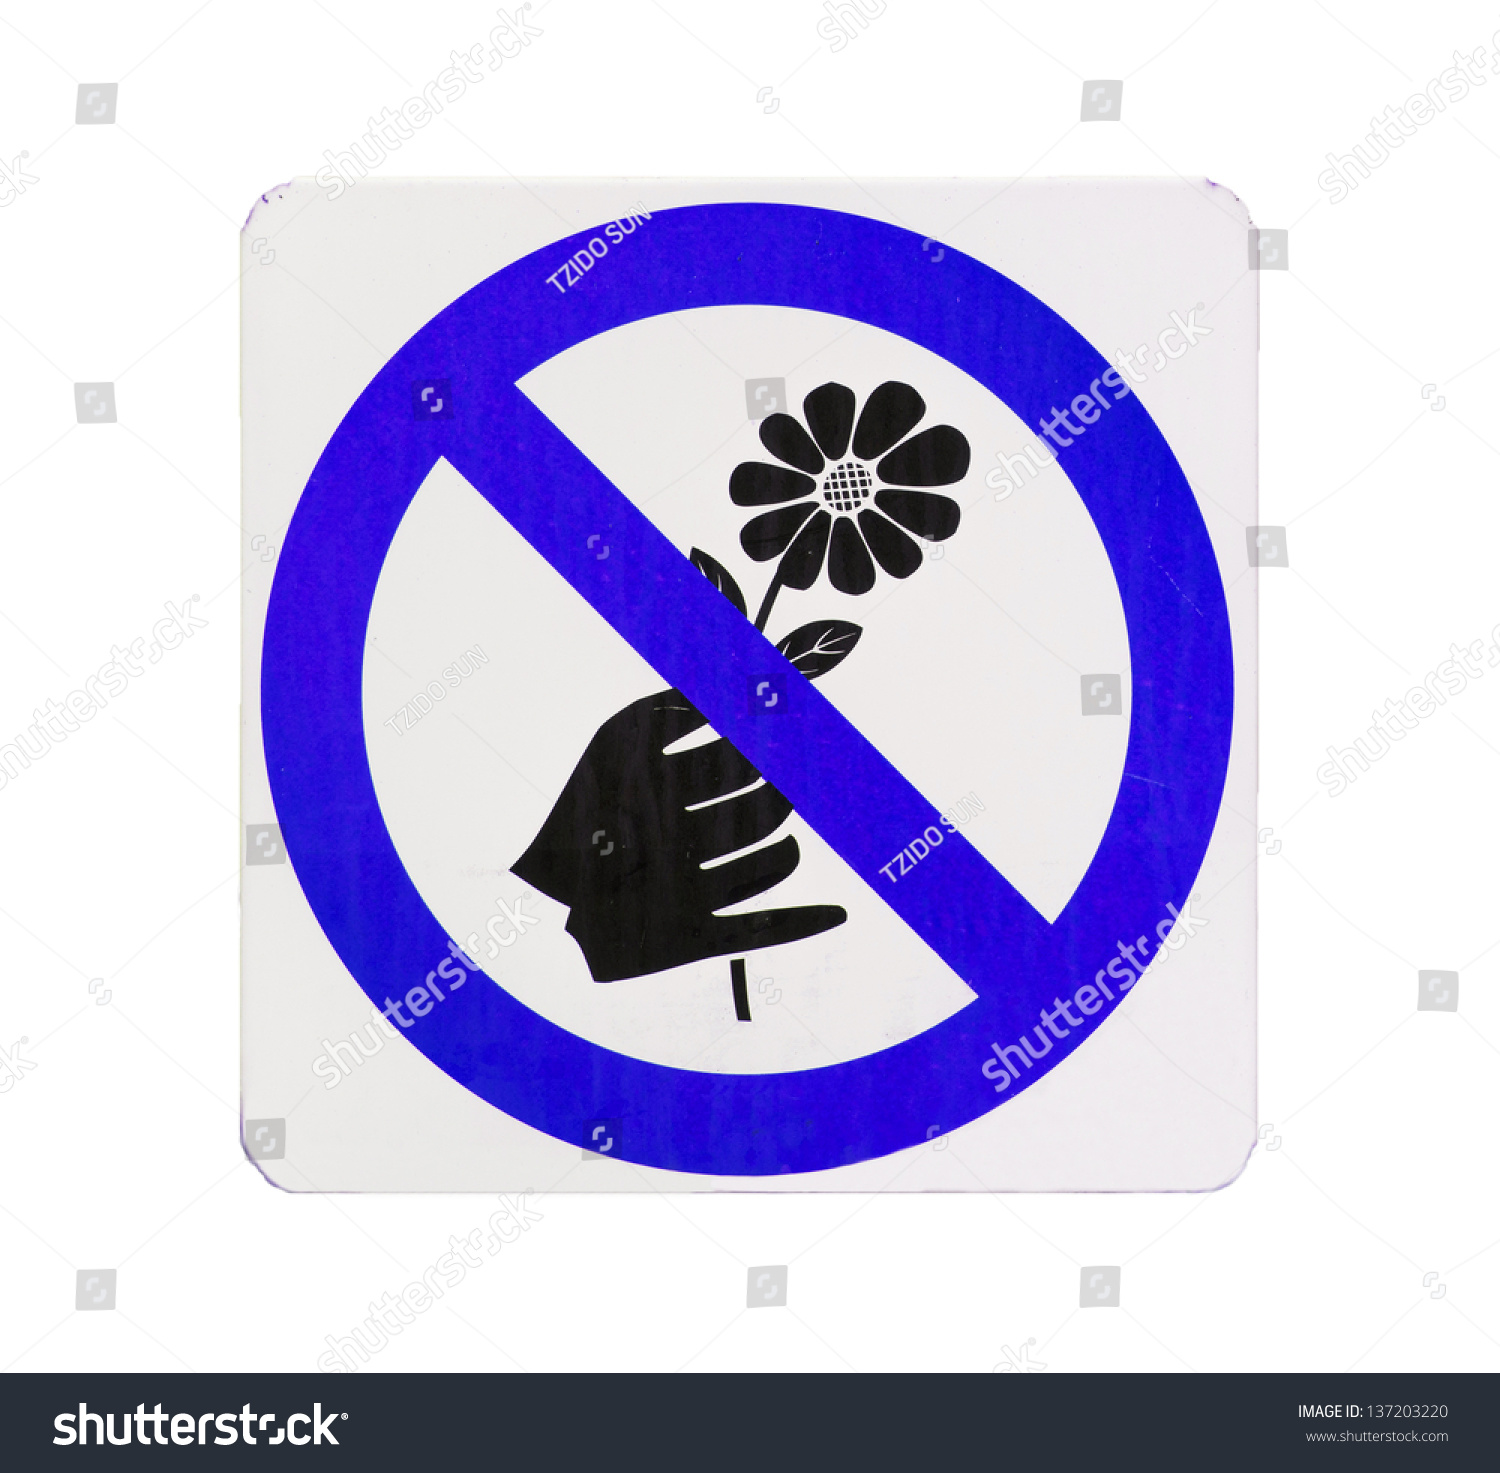 Do Not Pick Flower Sign Blue Cycle Color Stockfoto